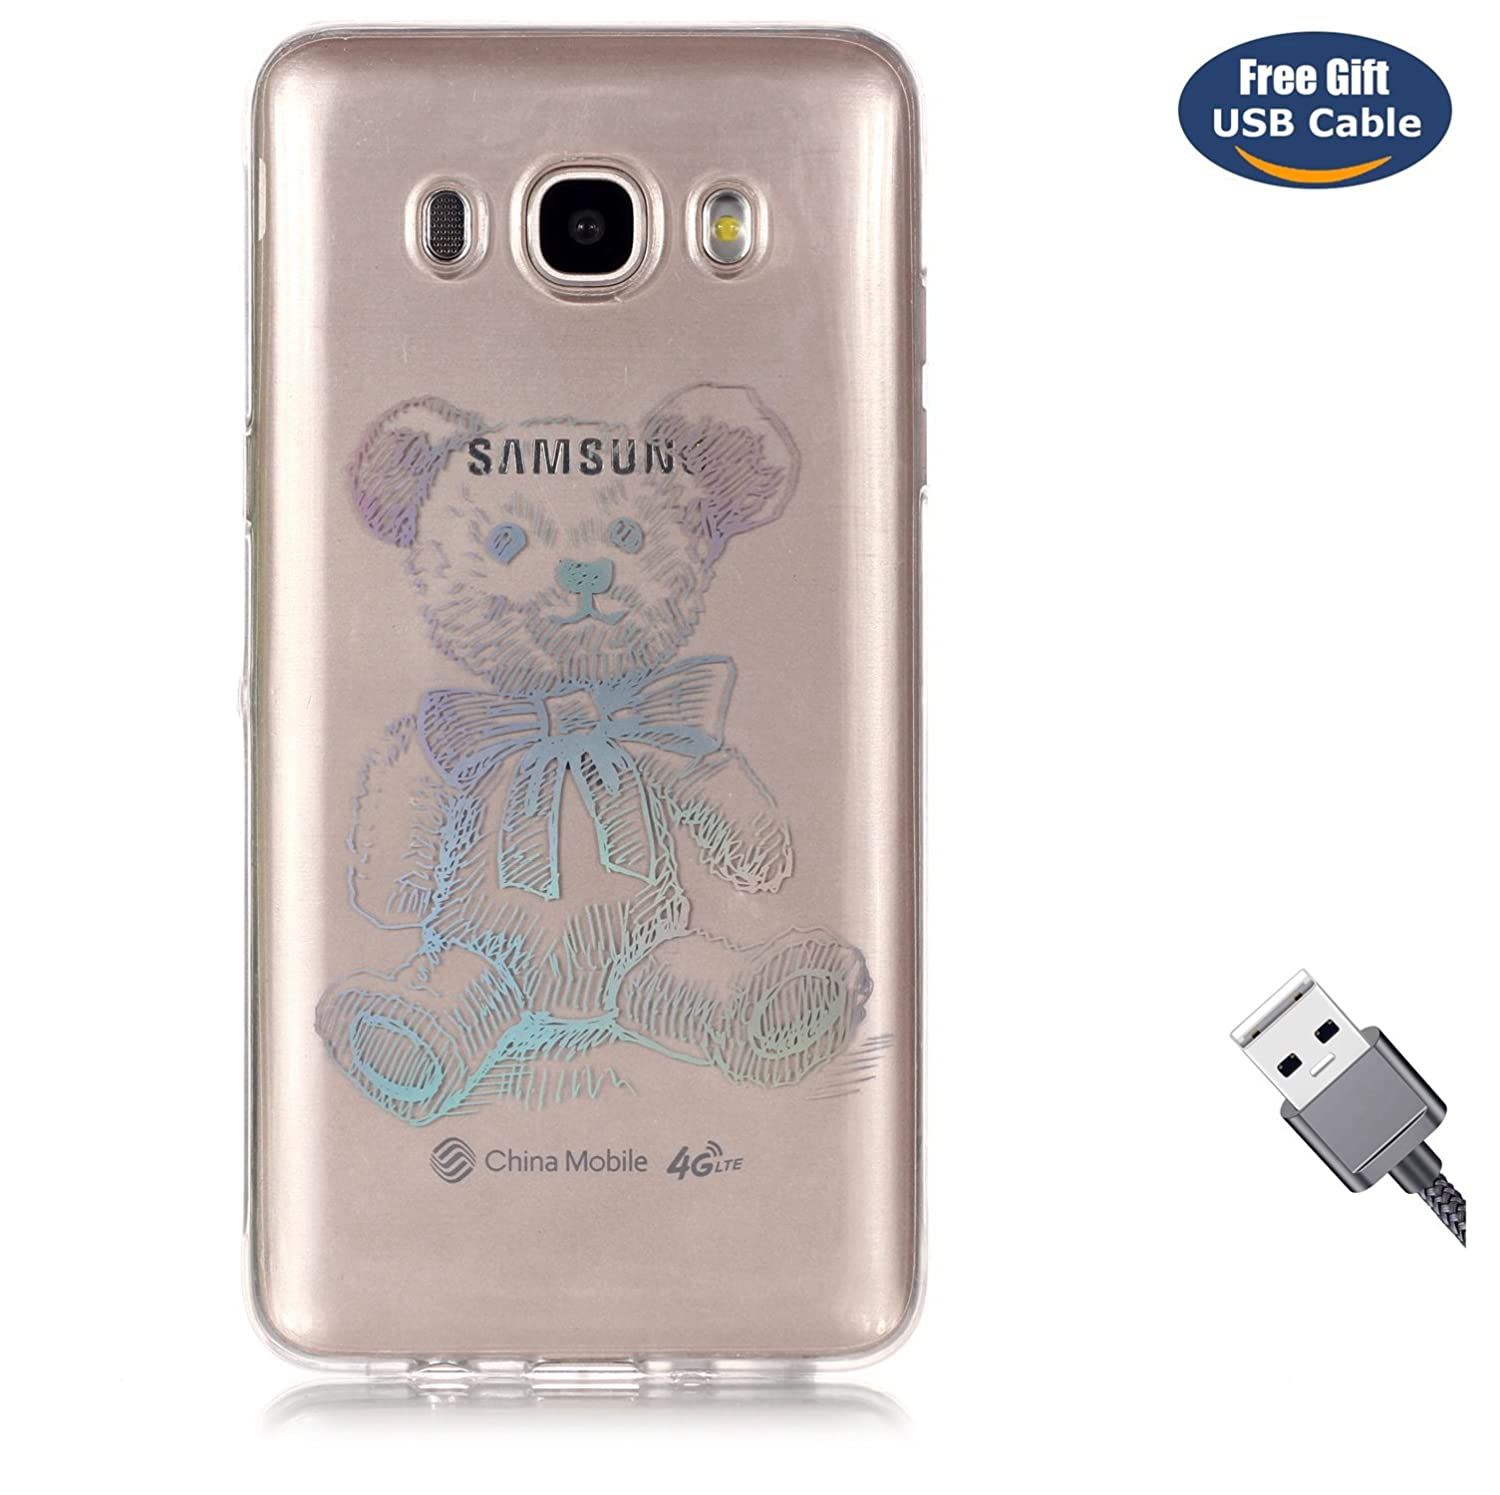 Galaxy J3 2017 case, Galaxy J3 2017 cover, Aireratze Glitter Bling [Laser Technology] Ultra Slim Soft Premium Gel TPU Fashion Thin Cover Cute Gift Natural Scenery Back Bumper Rubber Non-slip Shockproof Protective Case for Samsung Galaxy J3 2017(Butterflies